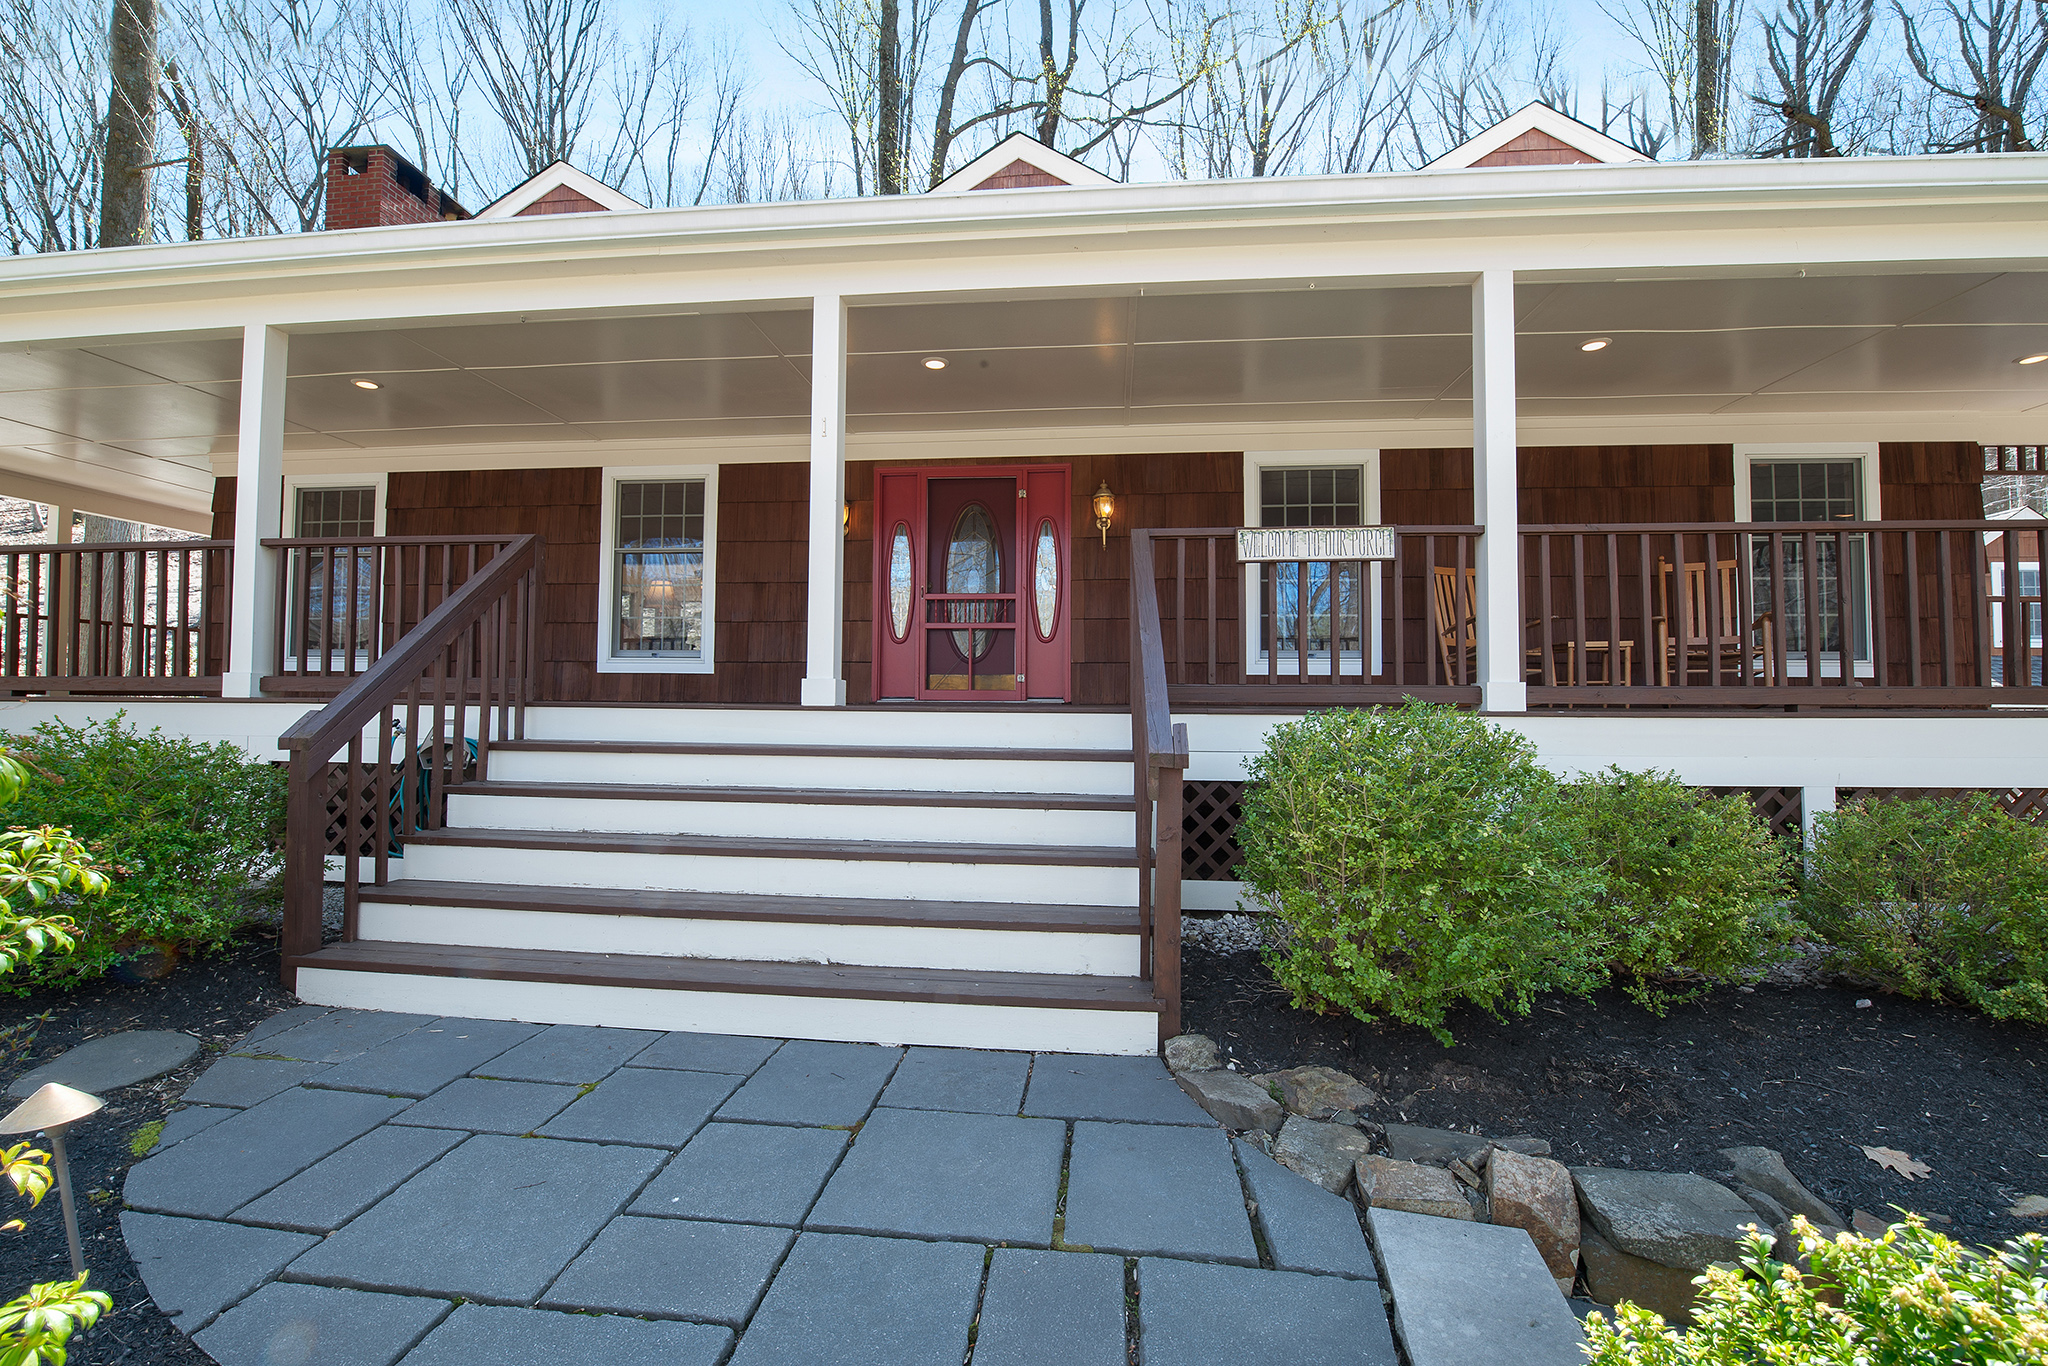 21 Dinner Pot Road, Tewksbury –front porch (deleted 544fbdf080f1a079caac7254a8a9bc54)